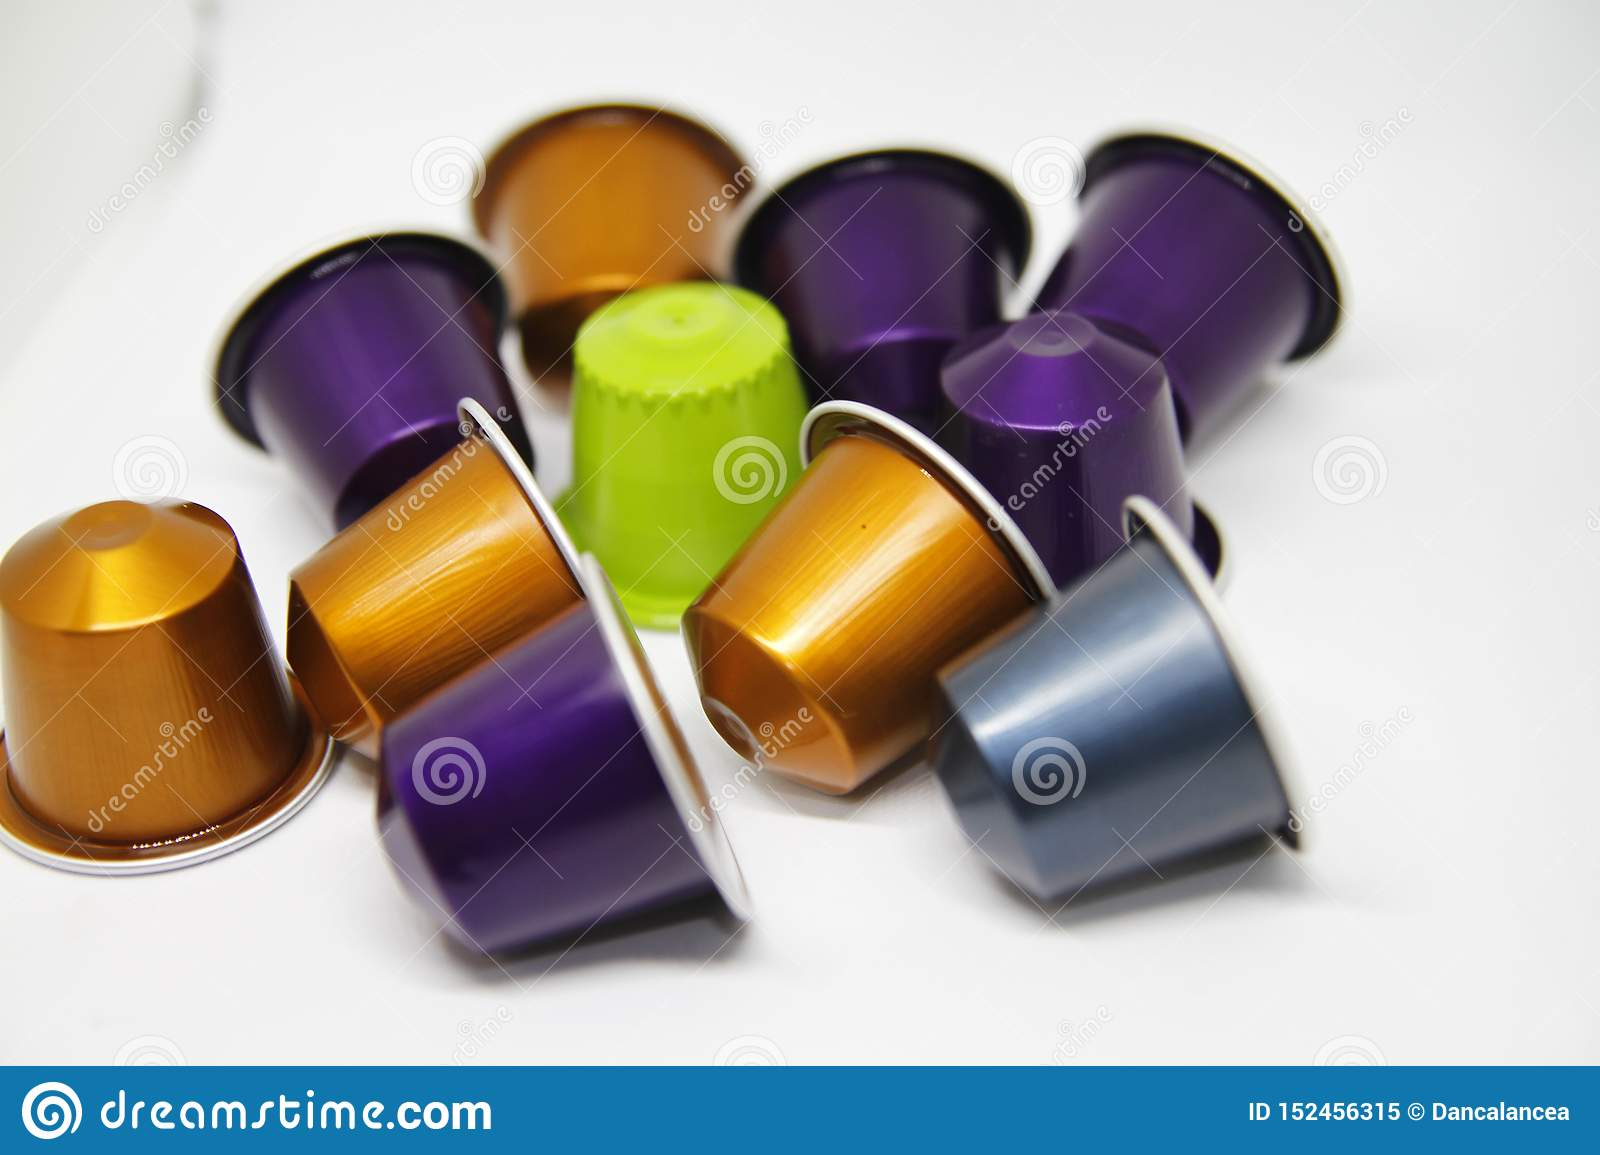 Coffee capsules on office desk